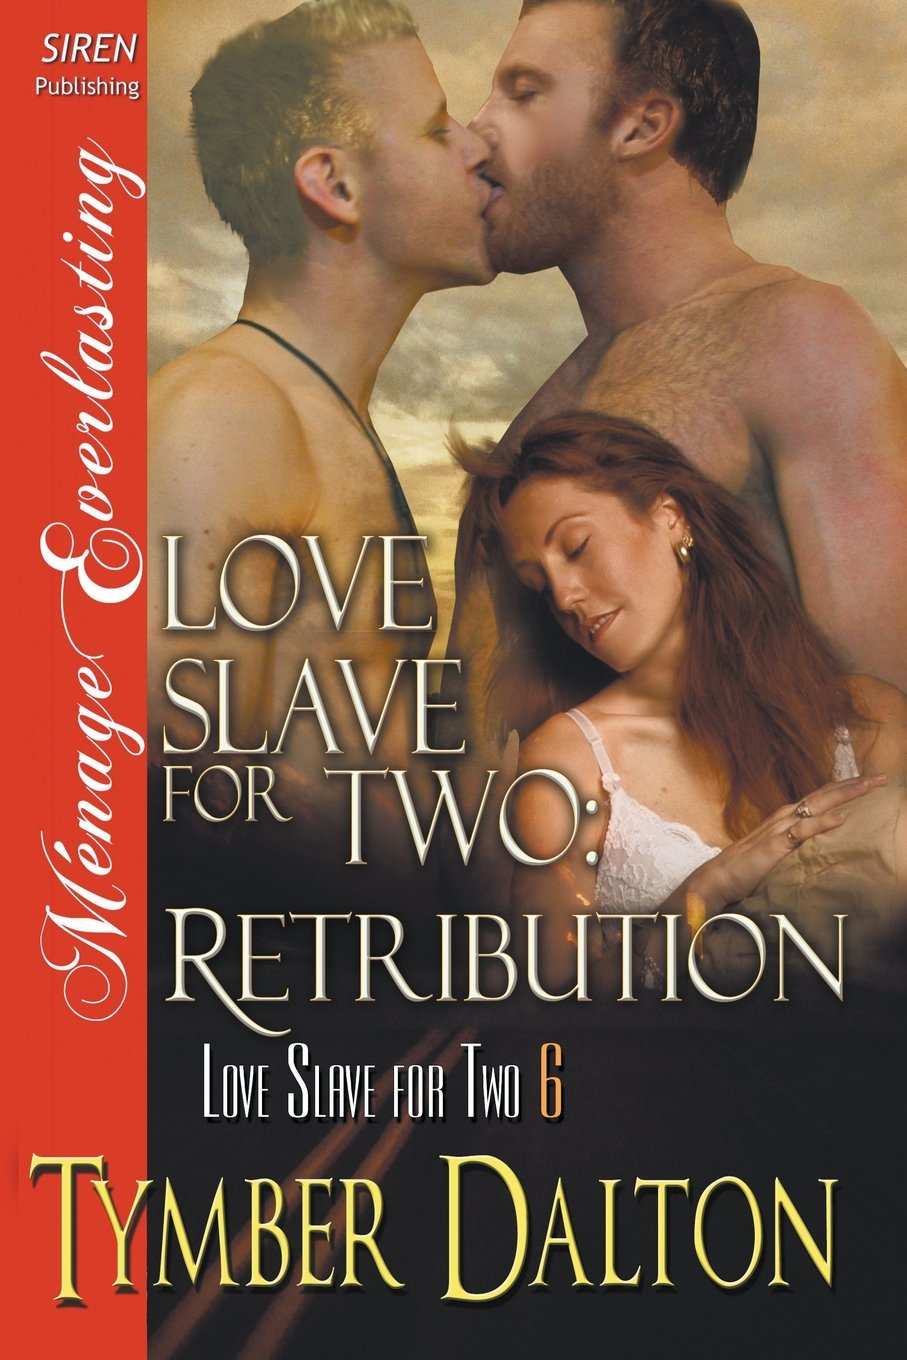 Download Love Slave for Two: Retribution [Love Slave for Two 6] (Siren Publishing Menage Everlasting) ebook